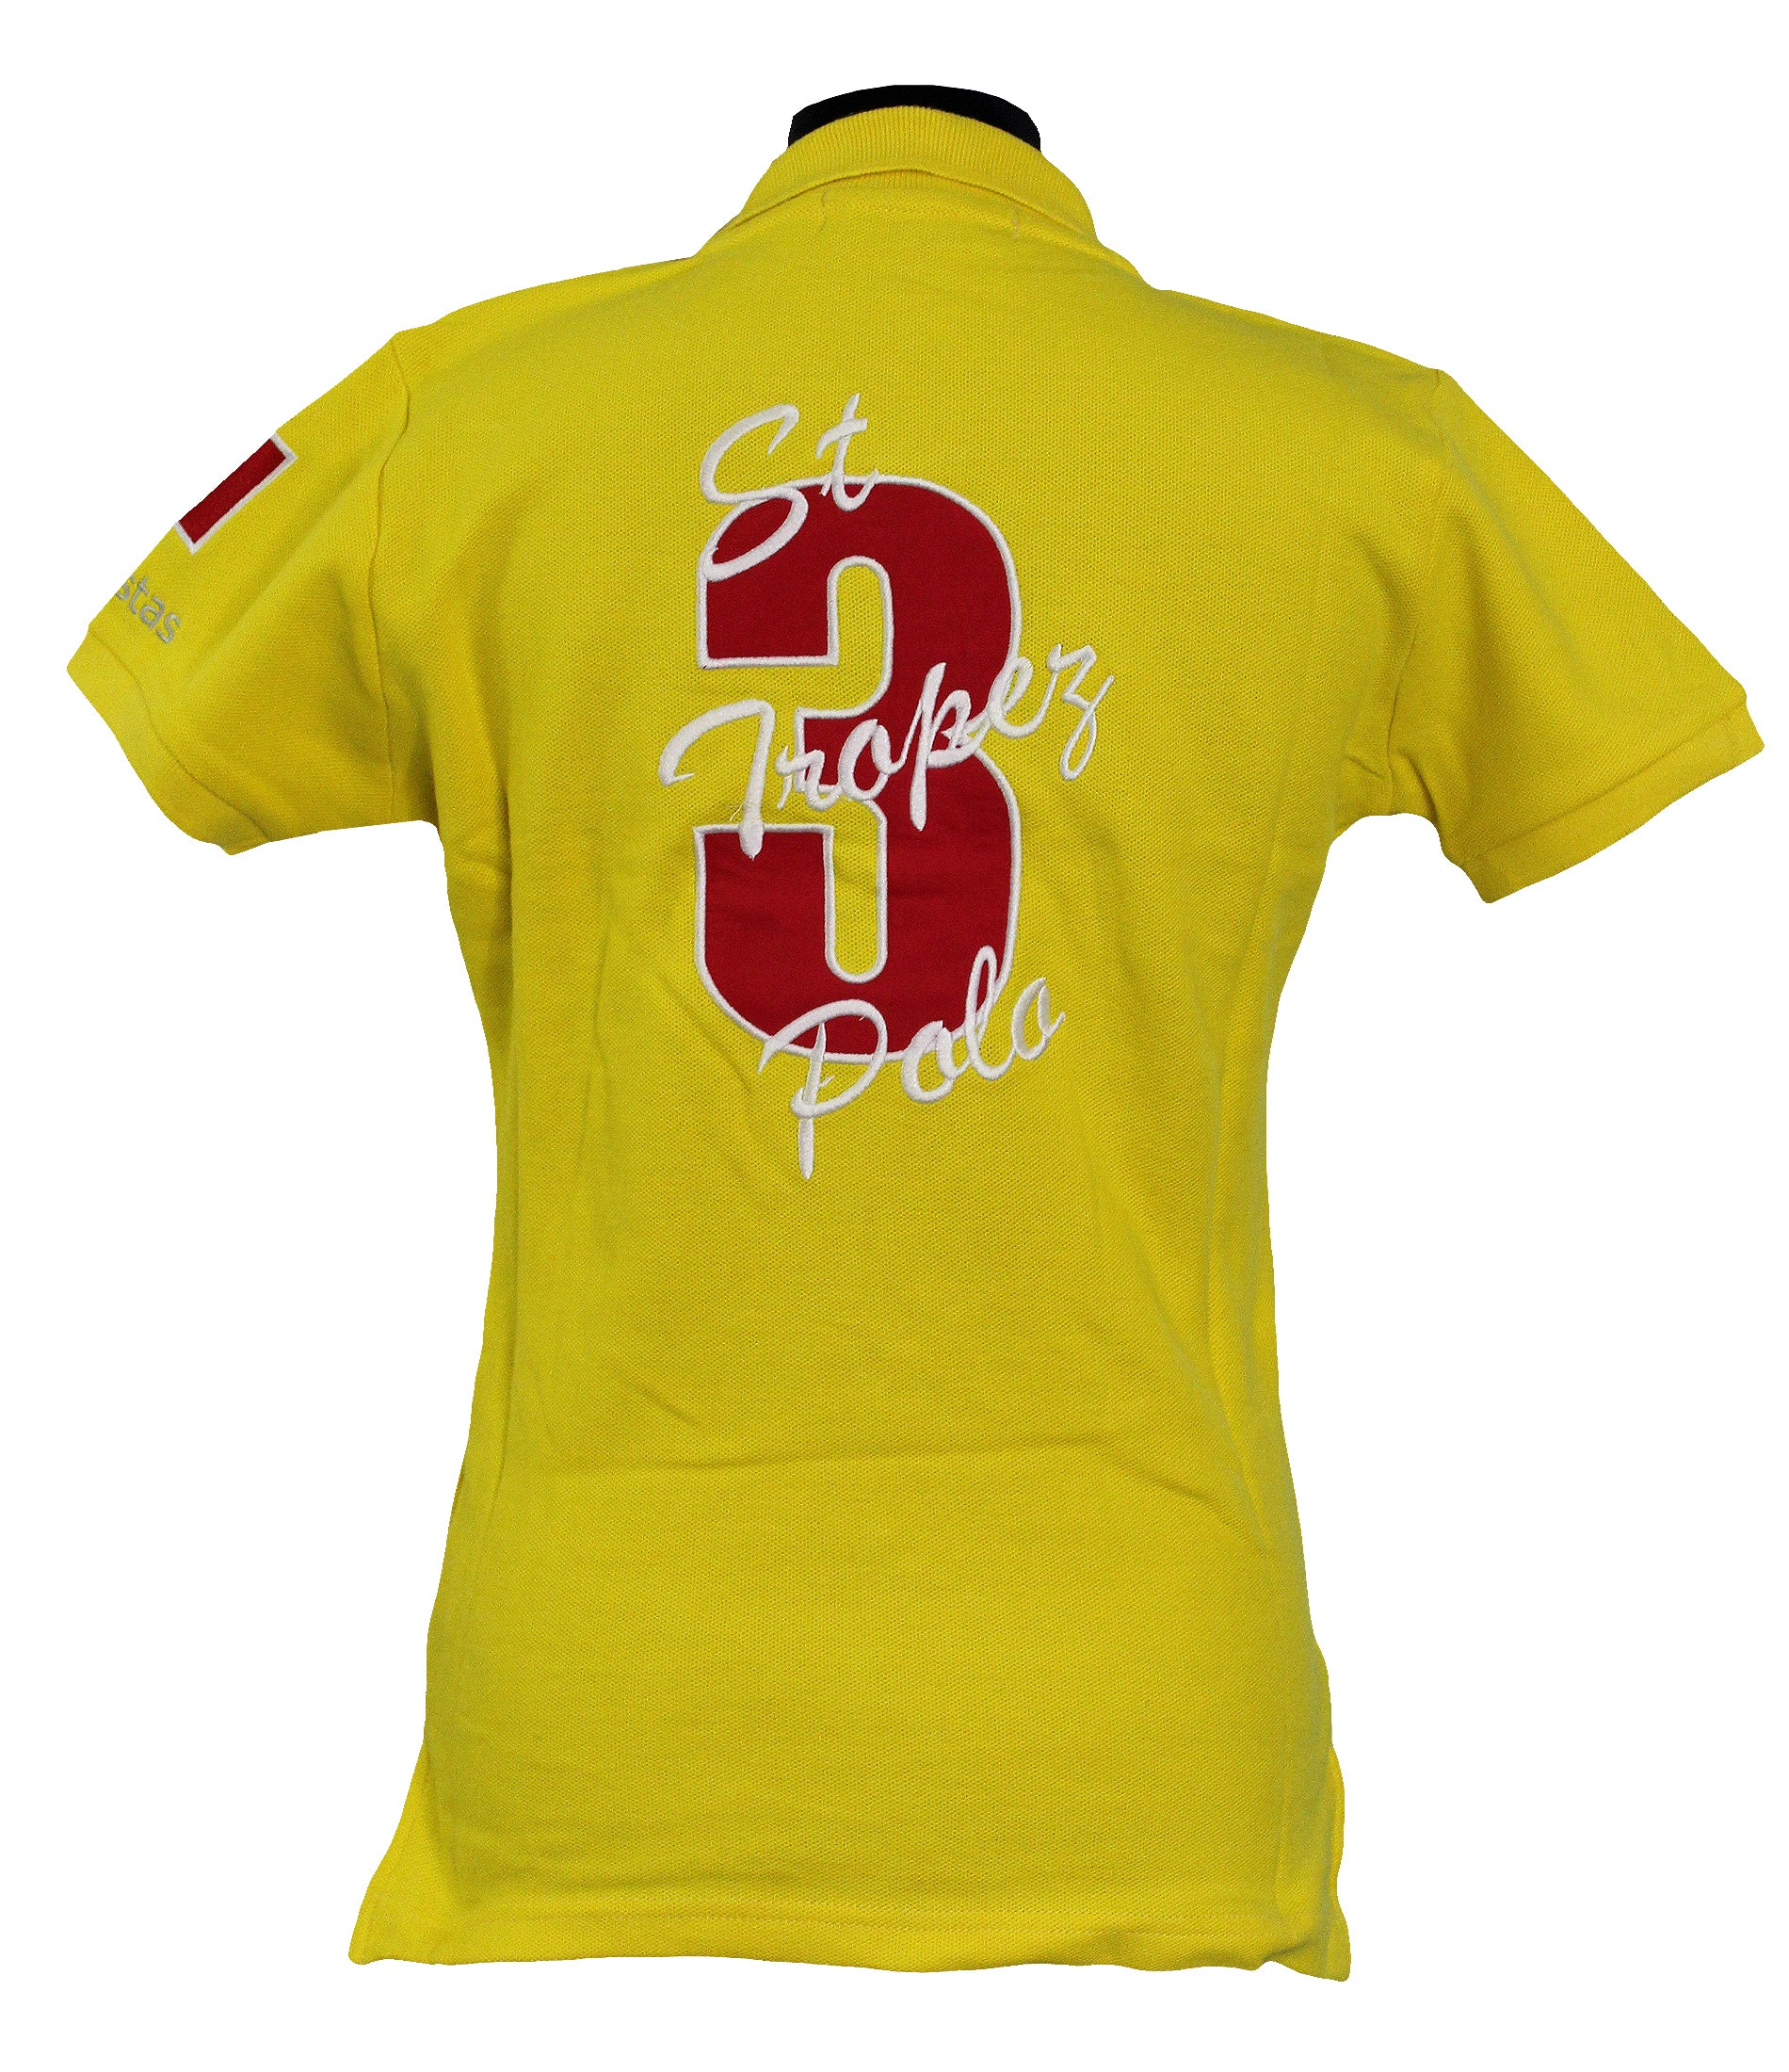 Polistas Ladies st.Tropez Yellow Polo Shirt RRP£99.95 NOW £25.00